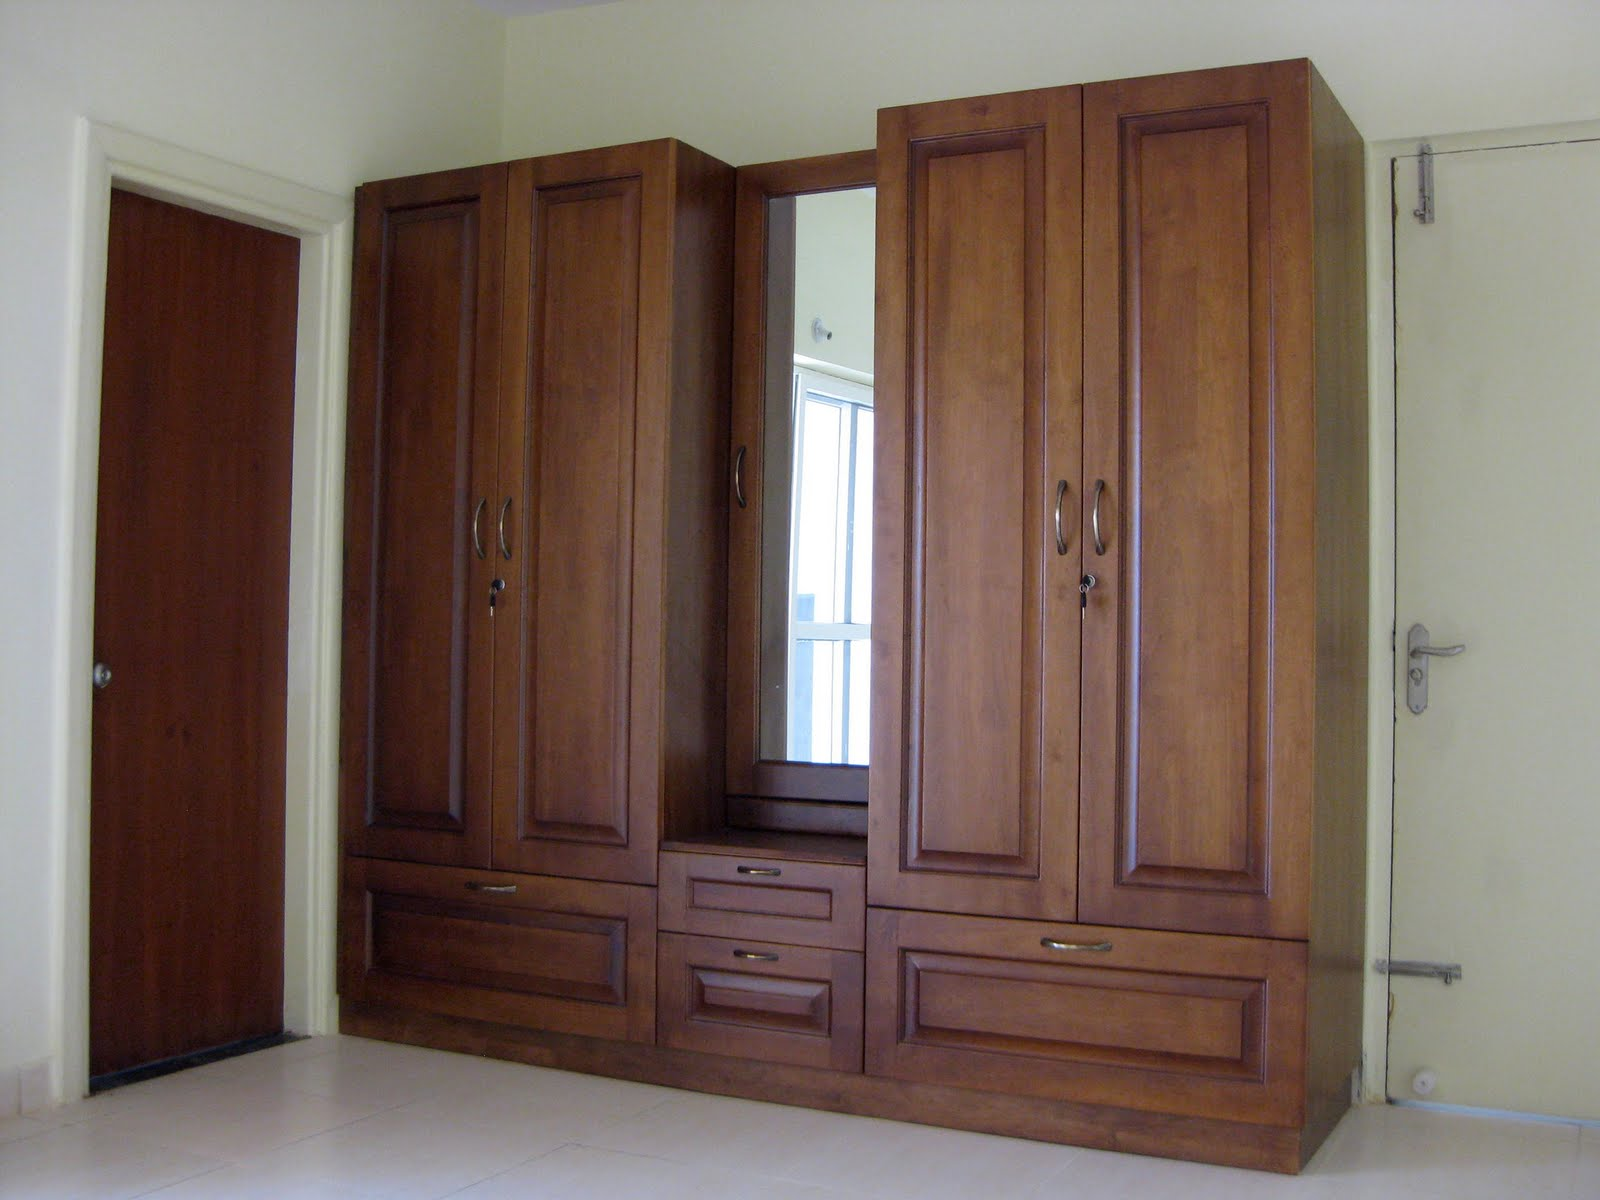 ANAGA furniture company : wardrobe 03 c from anagafurnco.blogspot.com size 1600 x 1200 jpeg 135kB